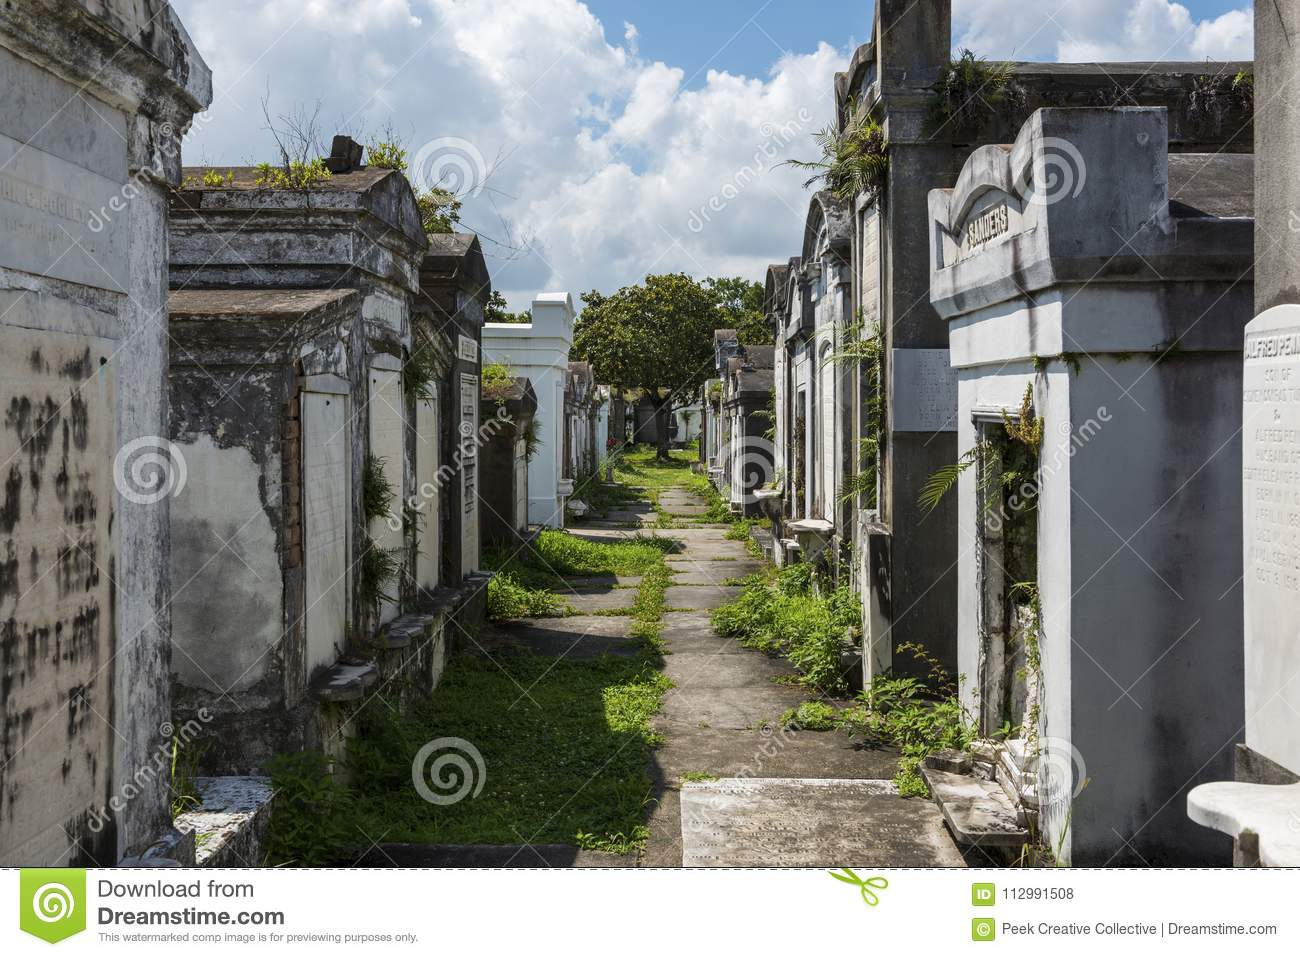 Row of tombs at the Lafayette Cemetery No. 1 in the city of New Orleans, Louisiana